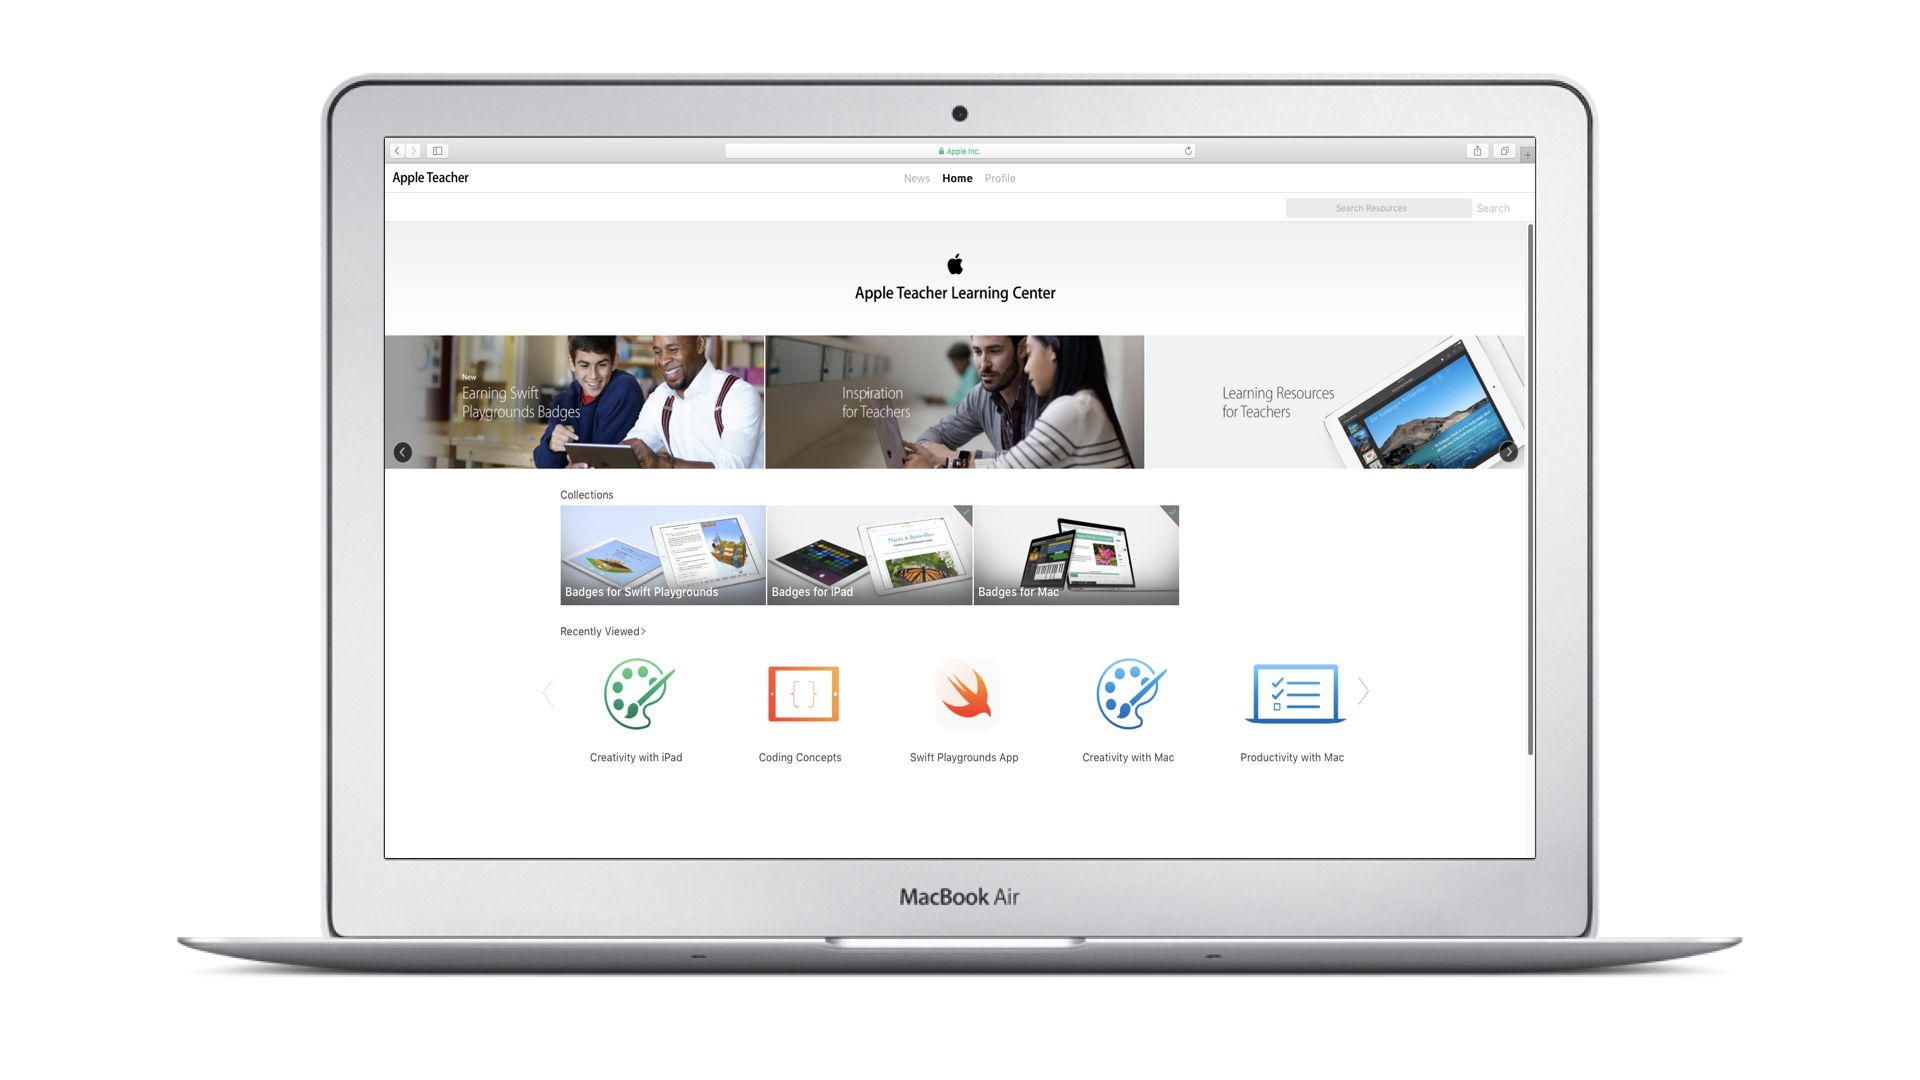 Apple Macbook for education